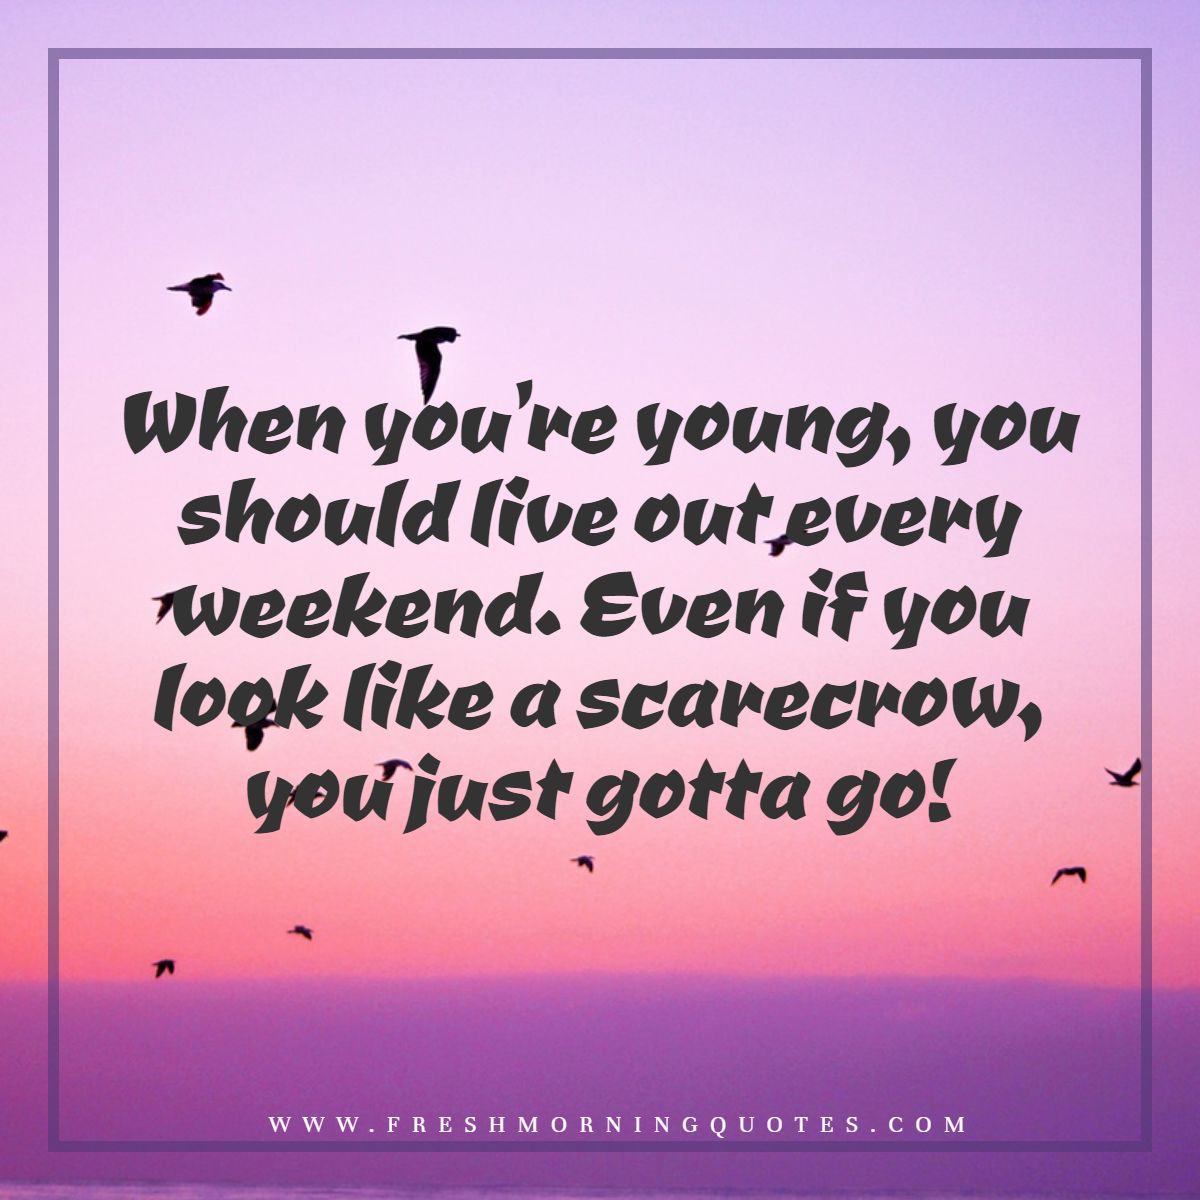 when you are young happy weekend quotes